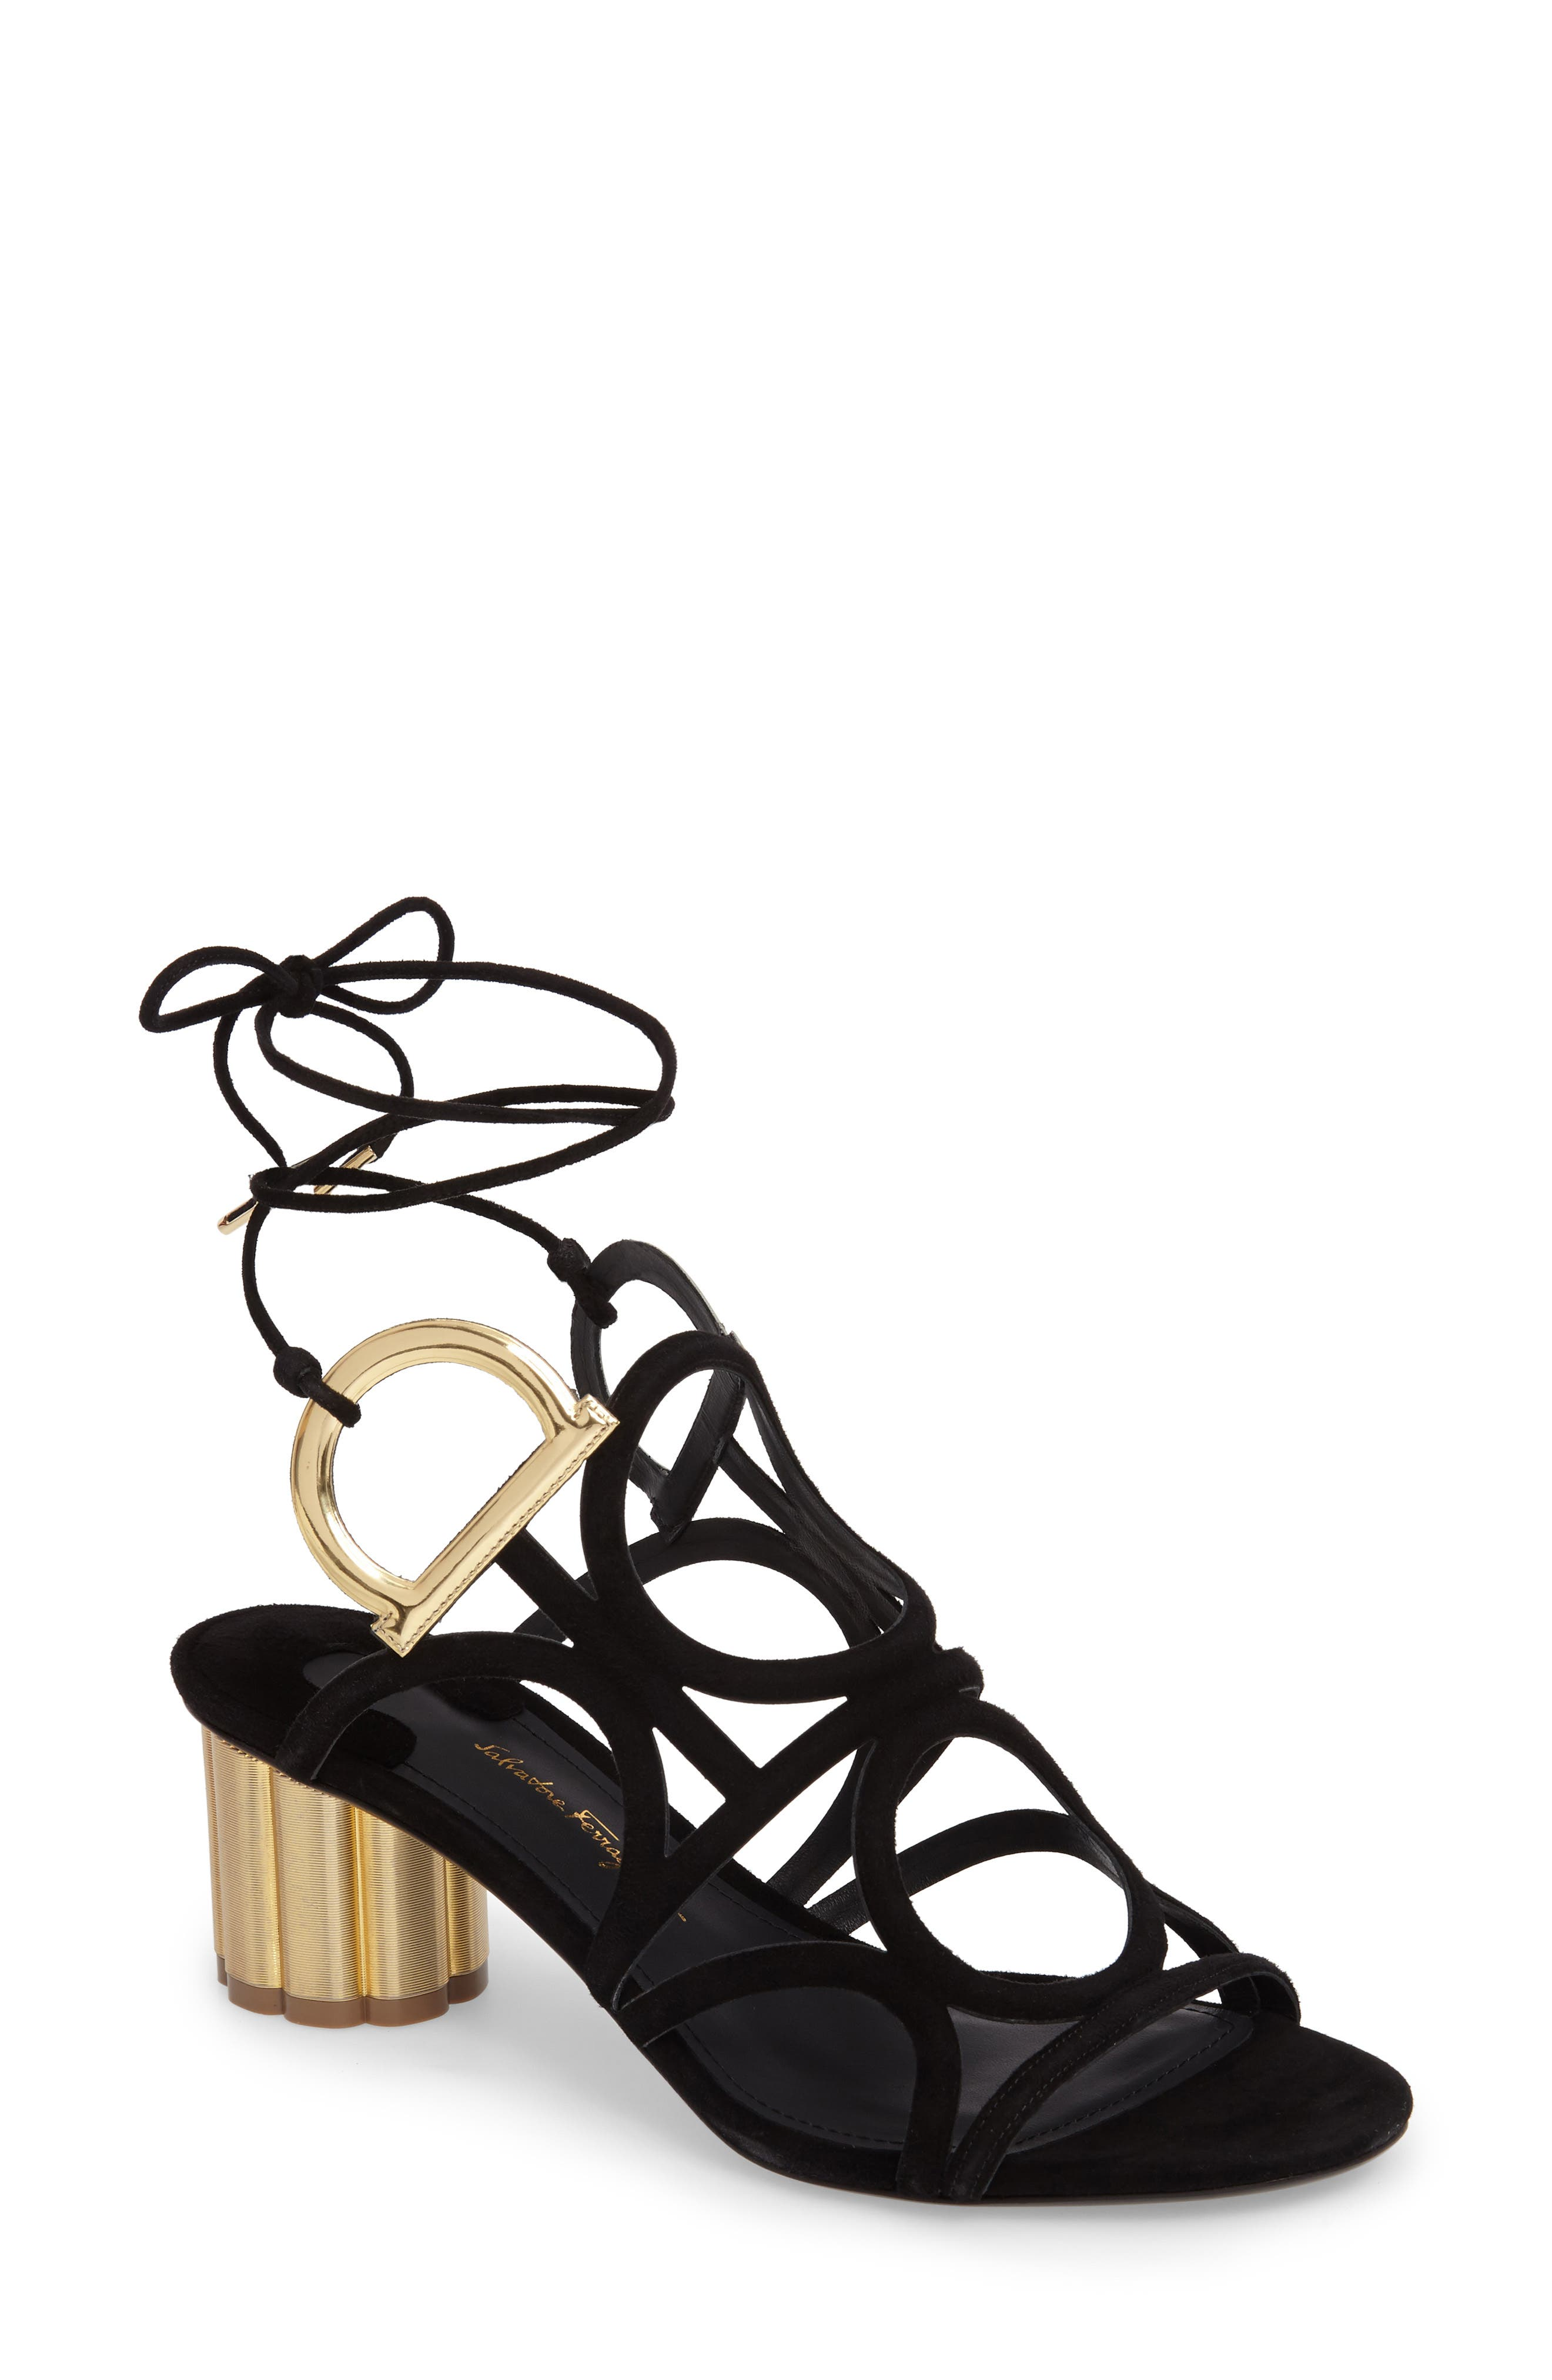 Vinci Lace-Up Block Heel Sandal,                         Main,                         color, BLACK SUEDE